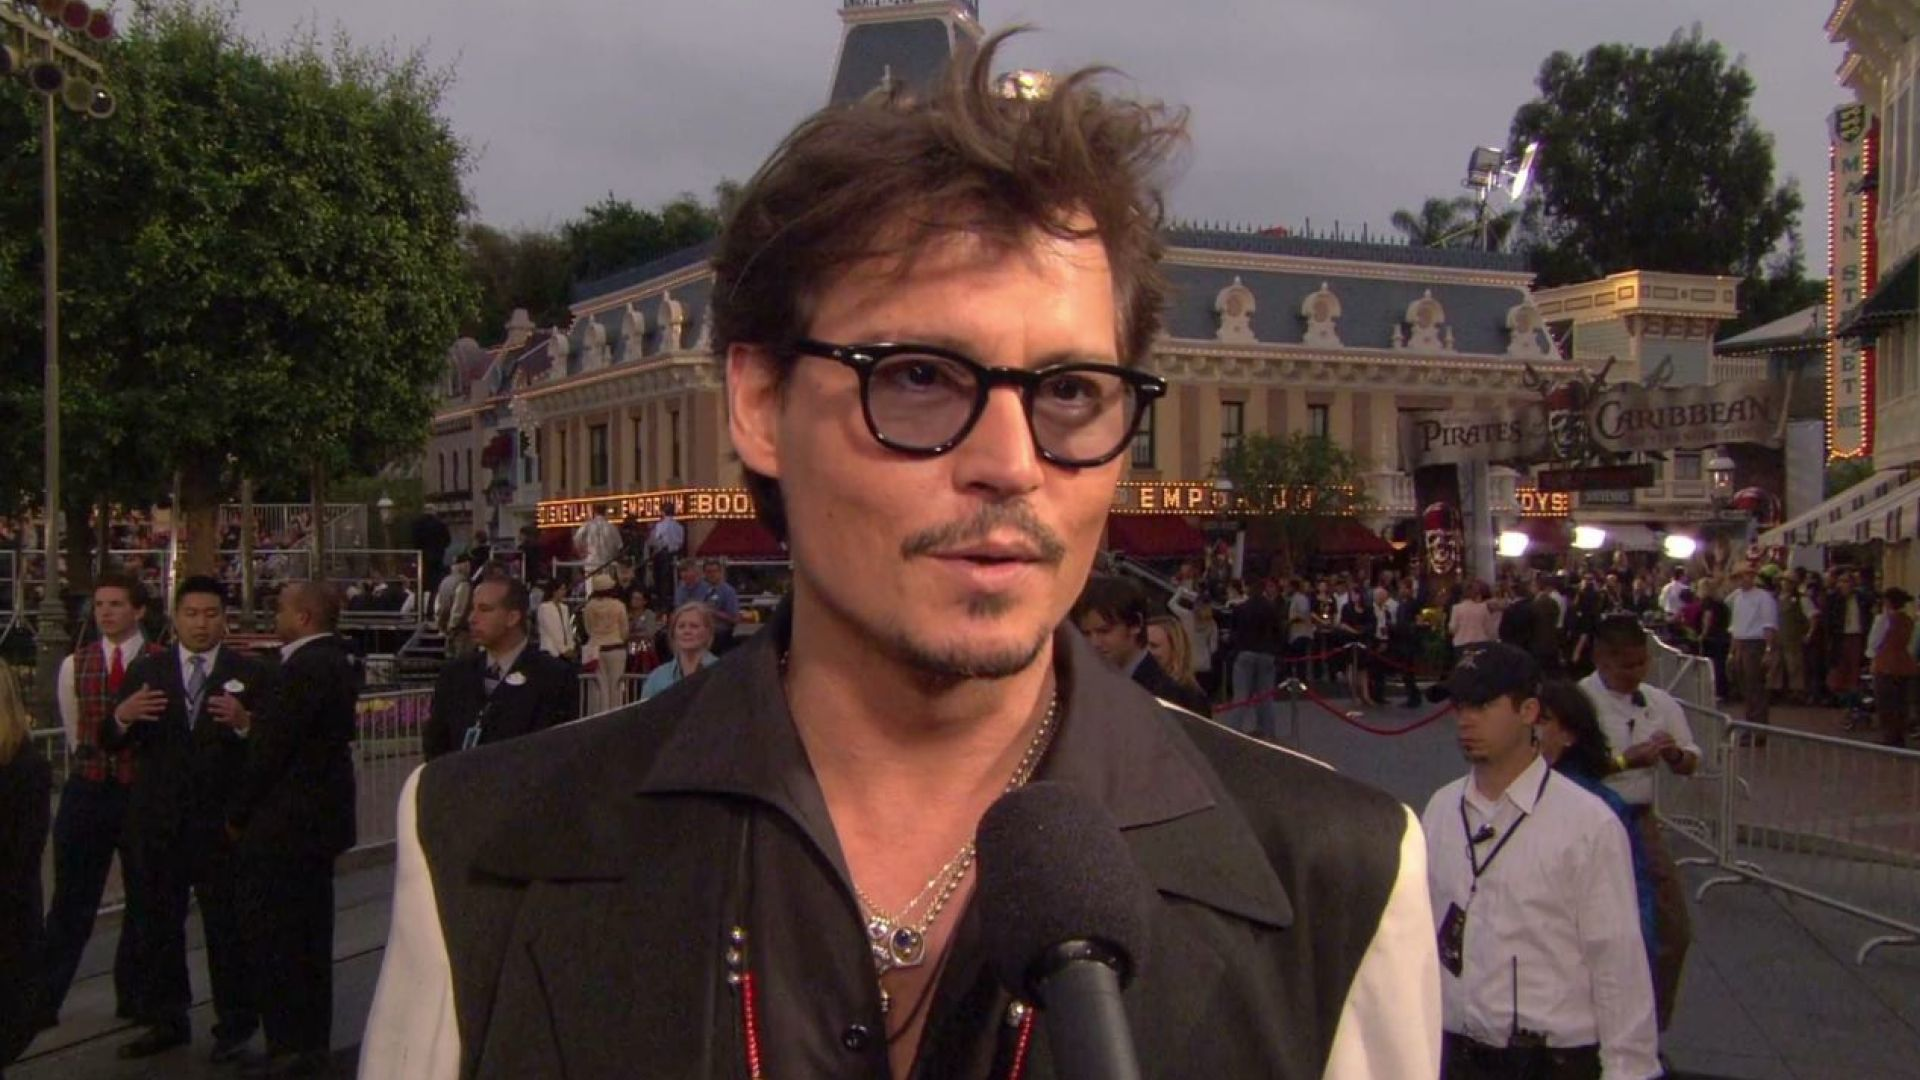 World Premiere of Pirates of the Caribbean 4: On Stranger Tides in Disneyland